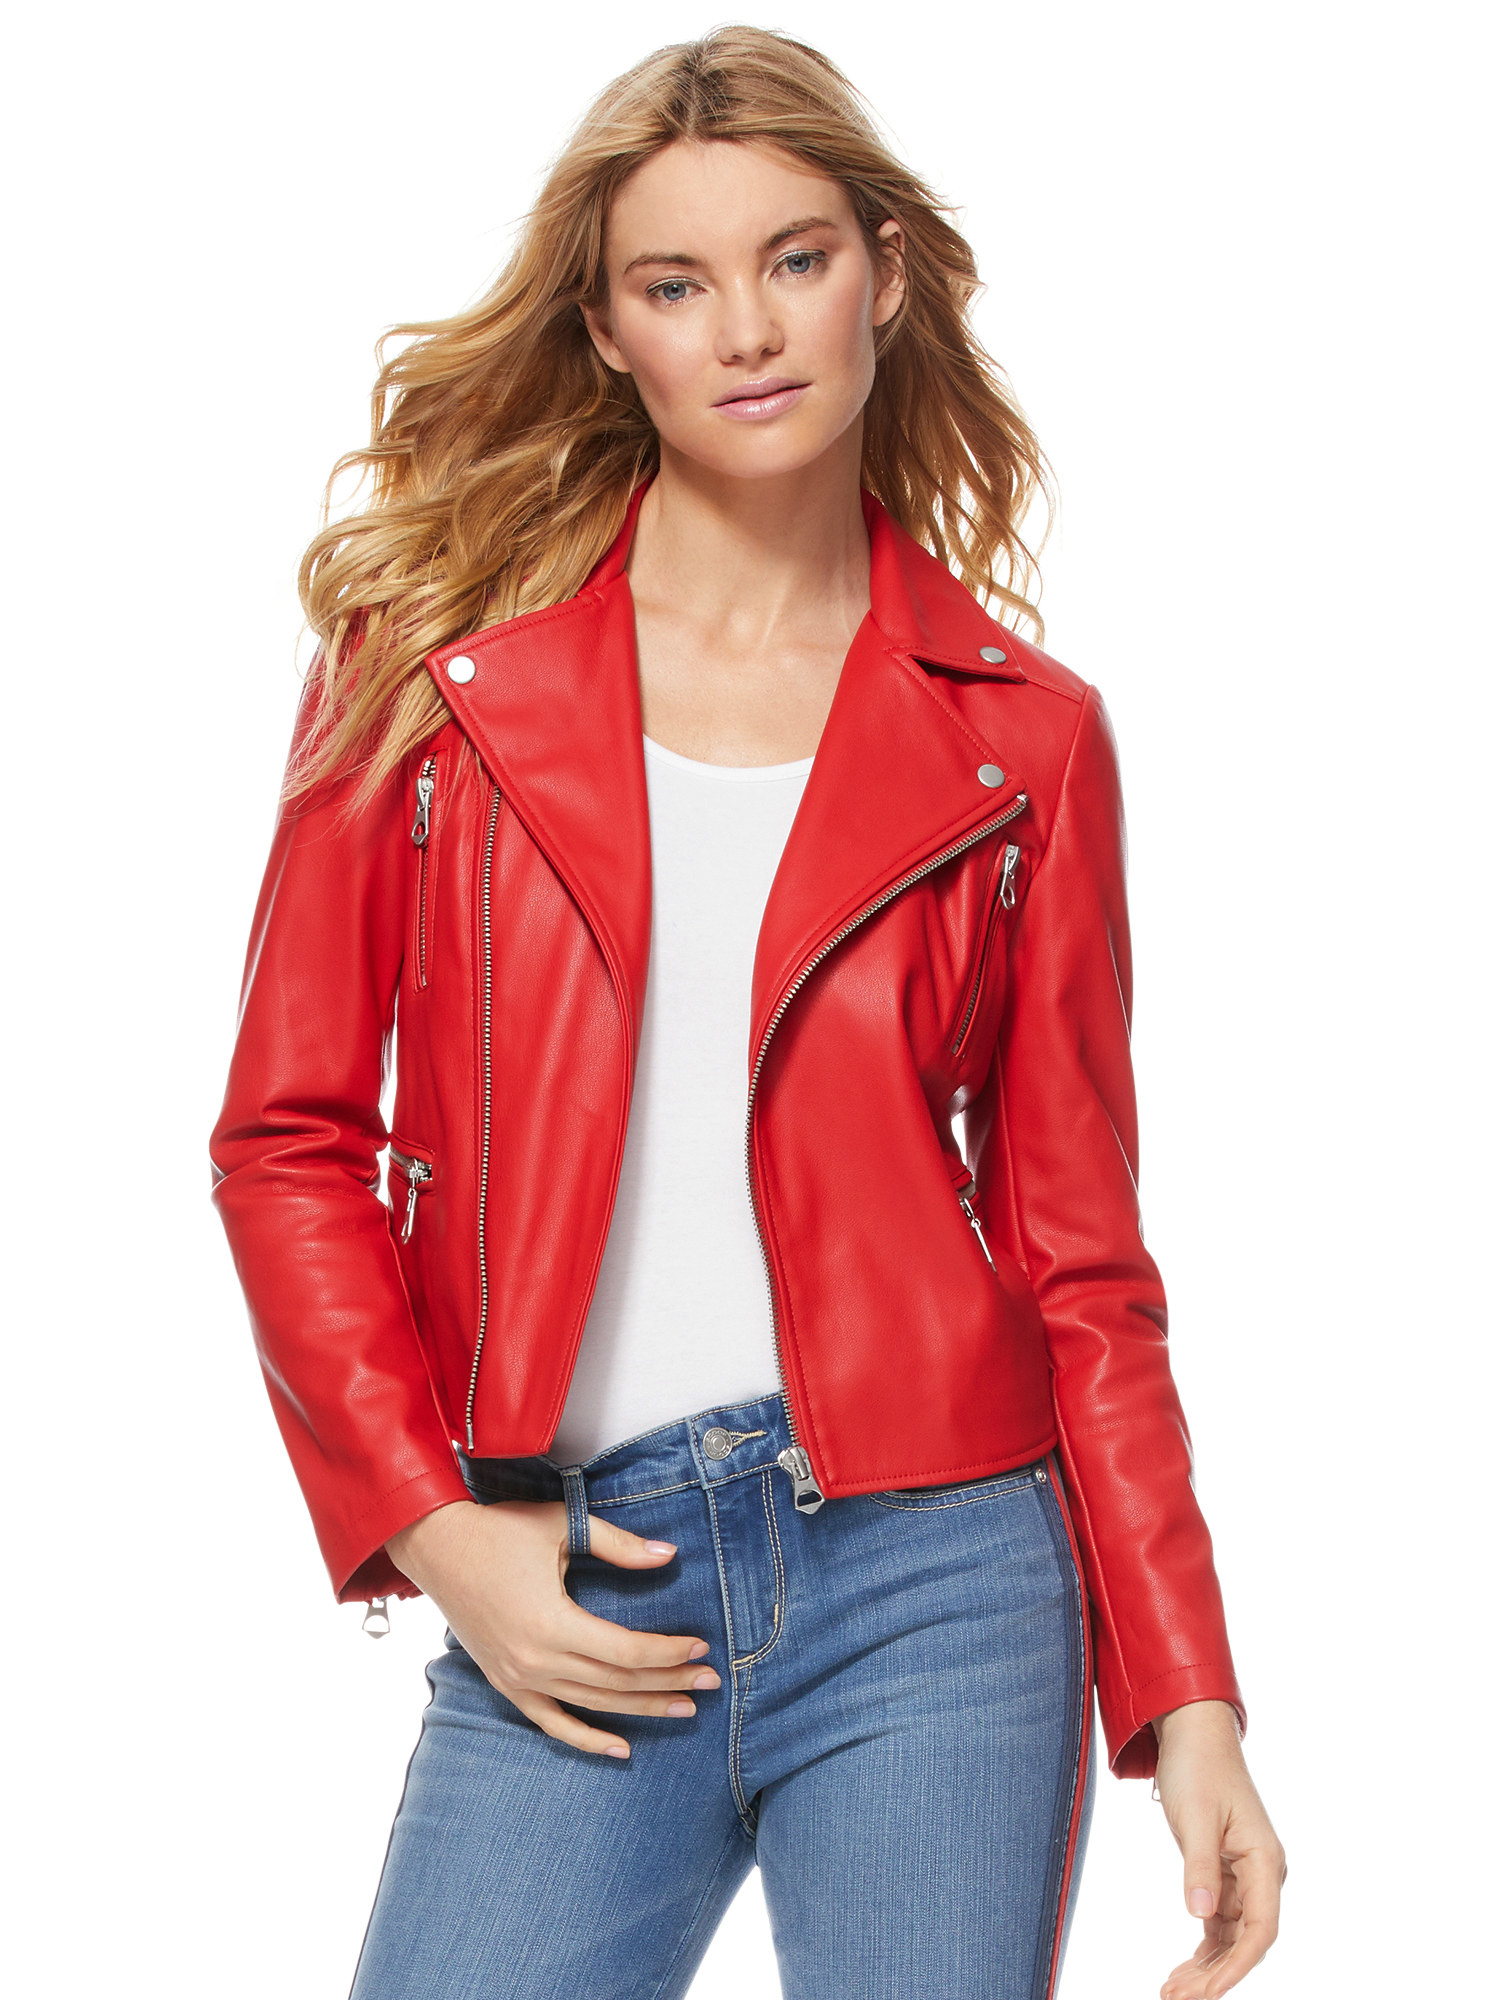 Model wearing red motto jacket with silver detailing